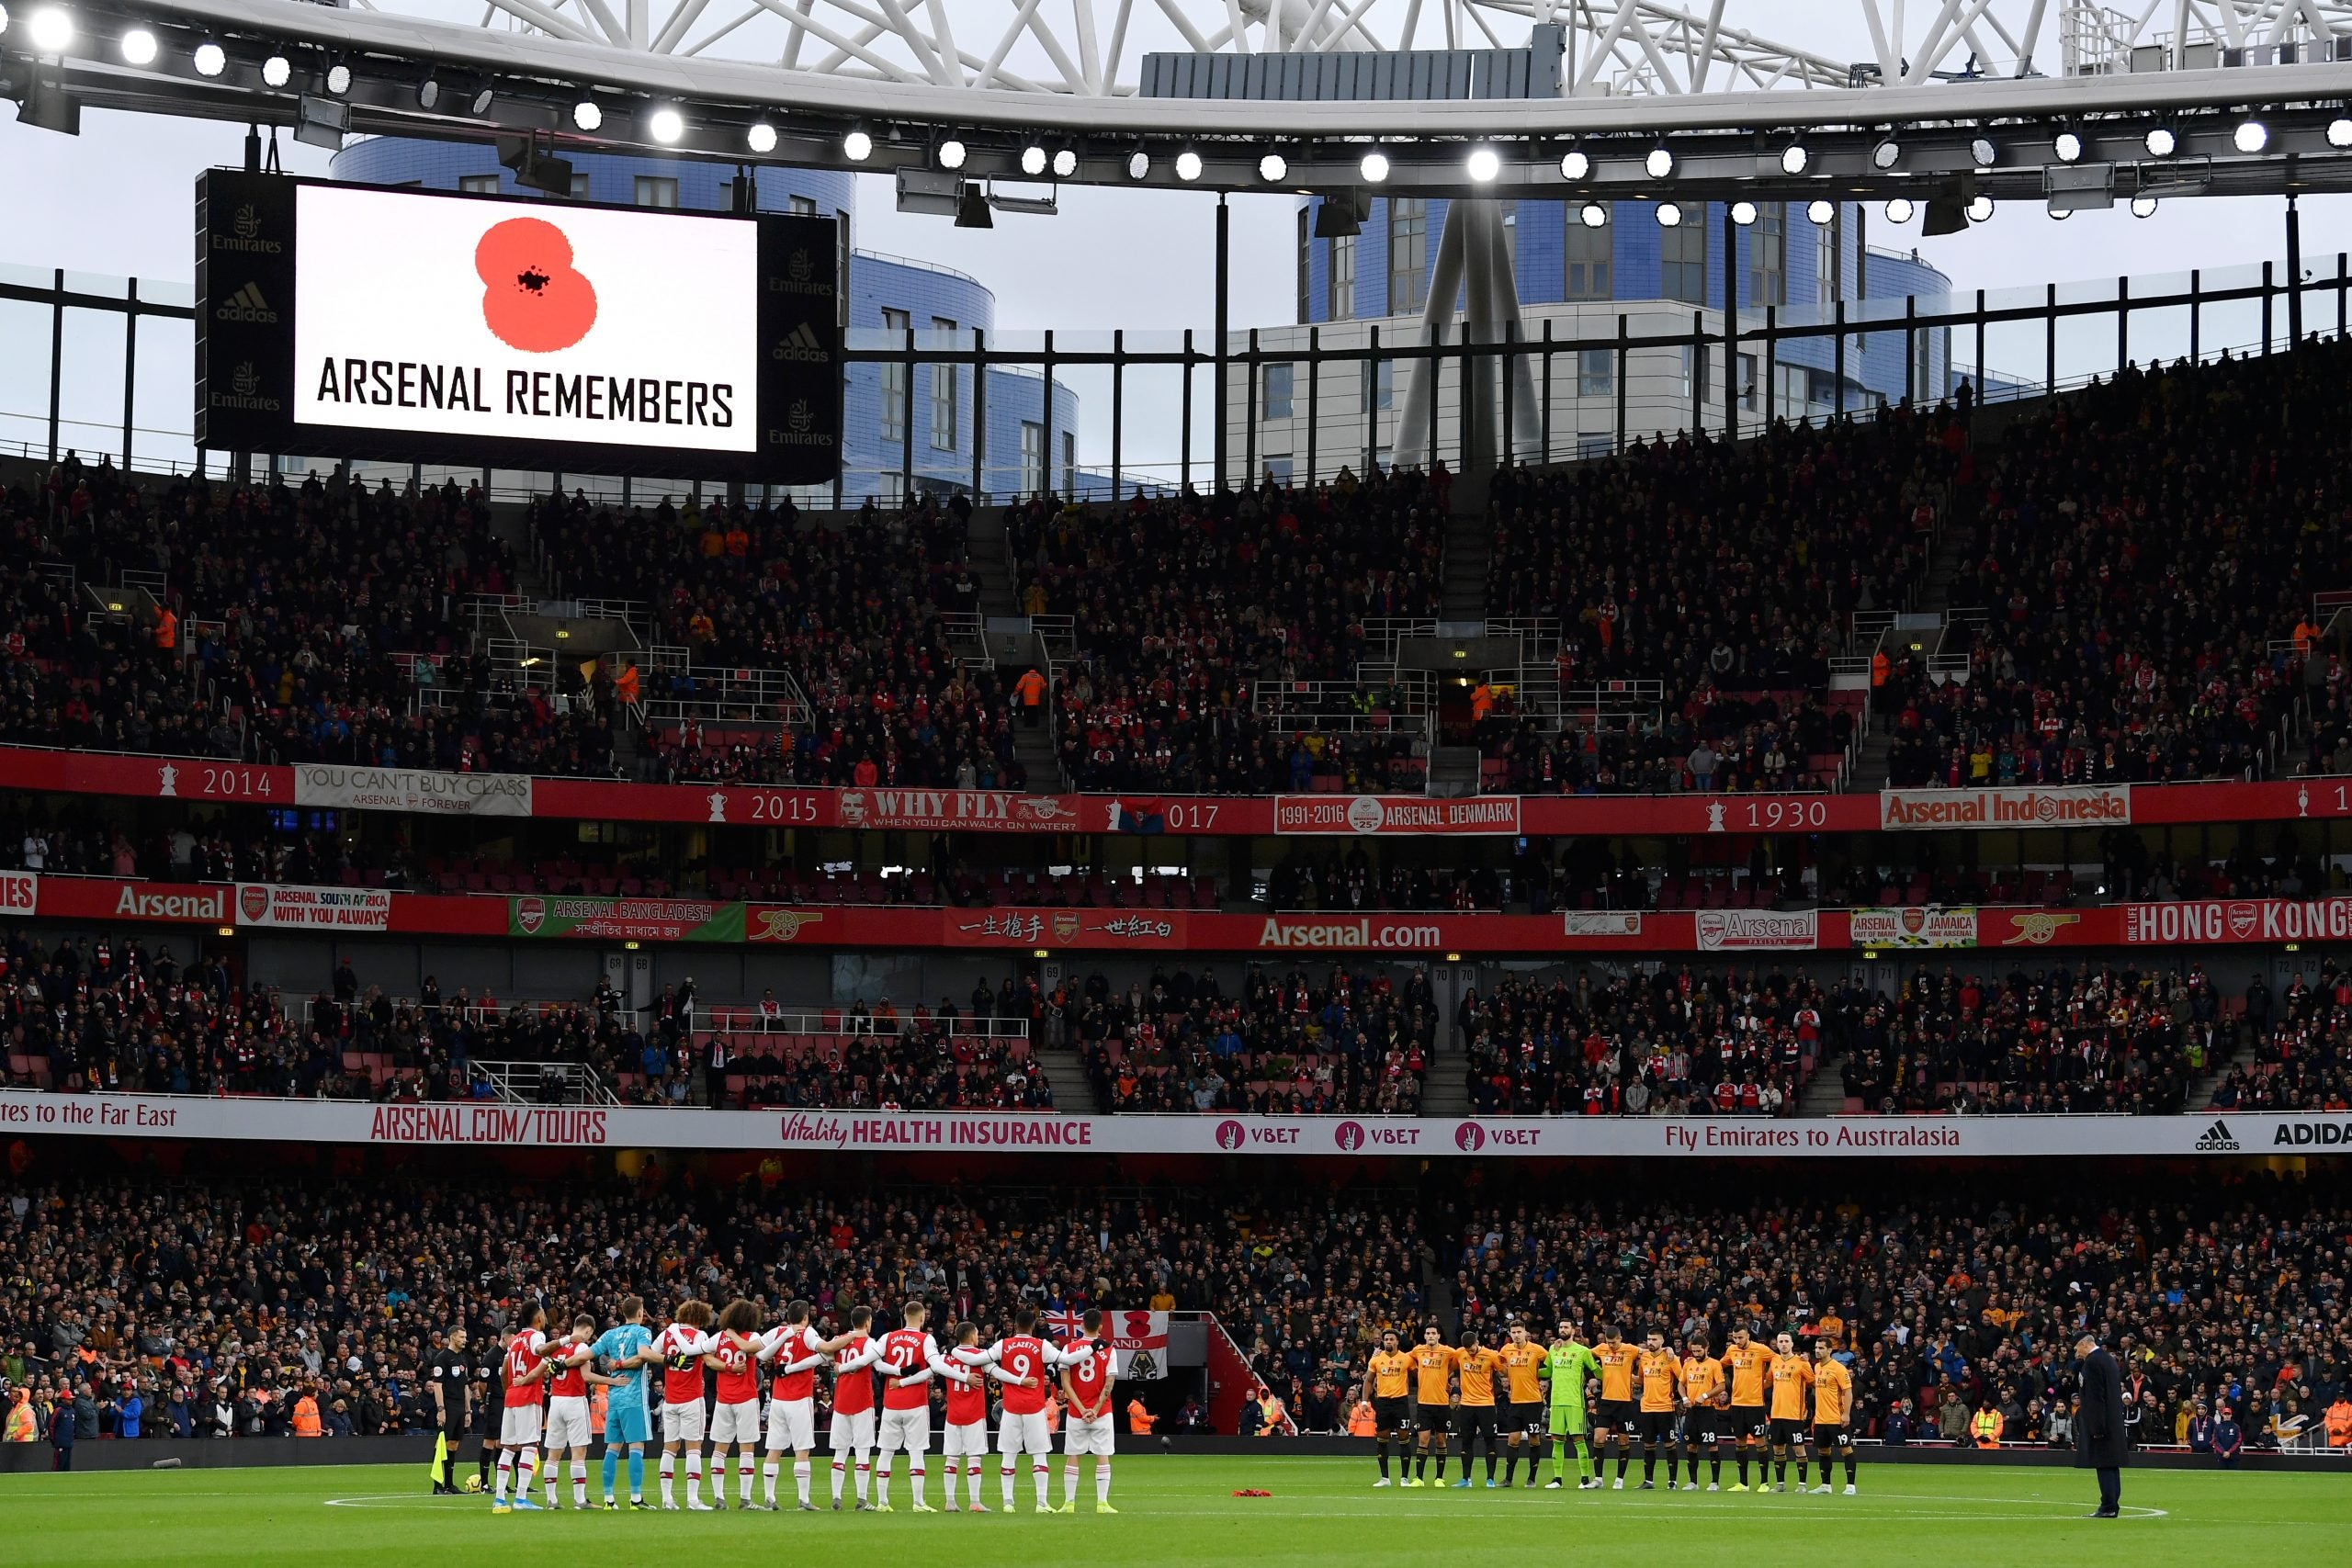 Two great football mysteries: what the crowds are chanting and why Arsenal fans are so mean